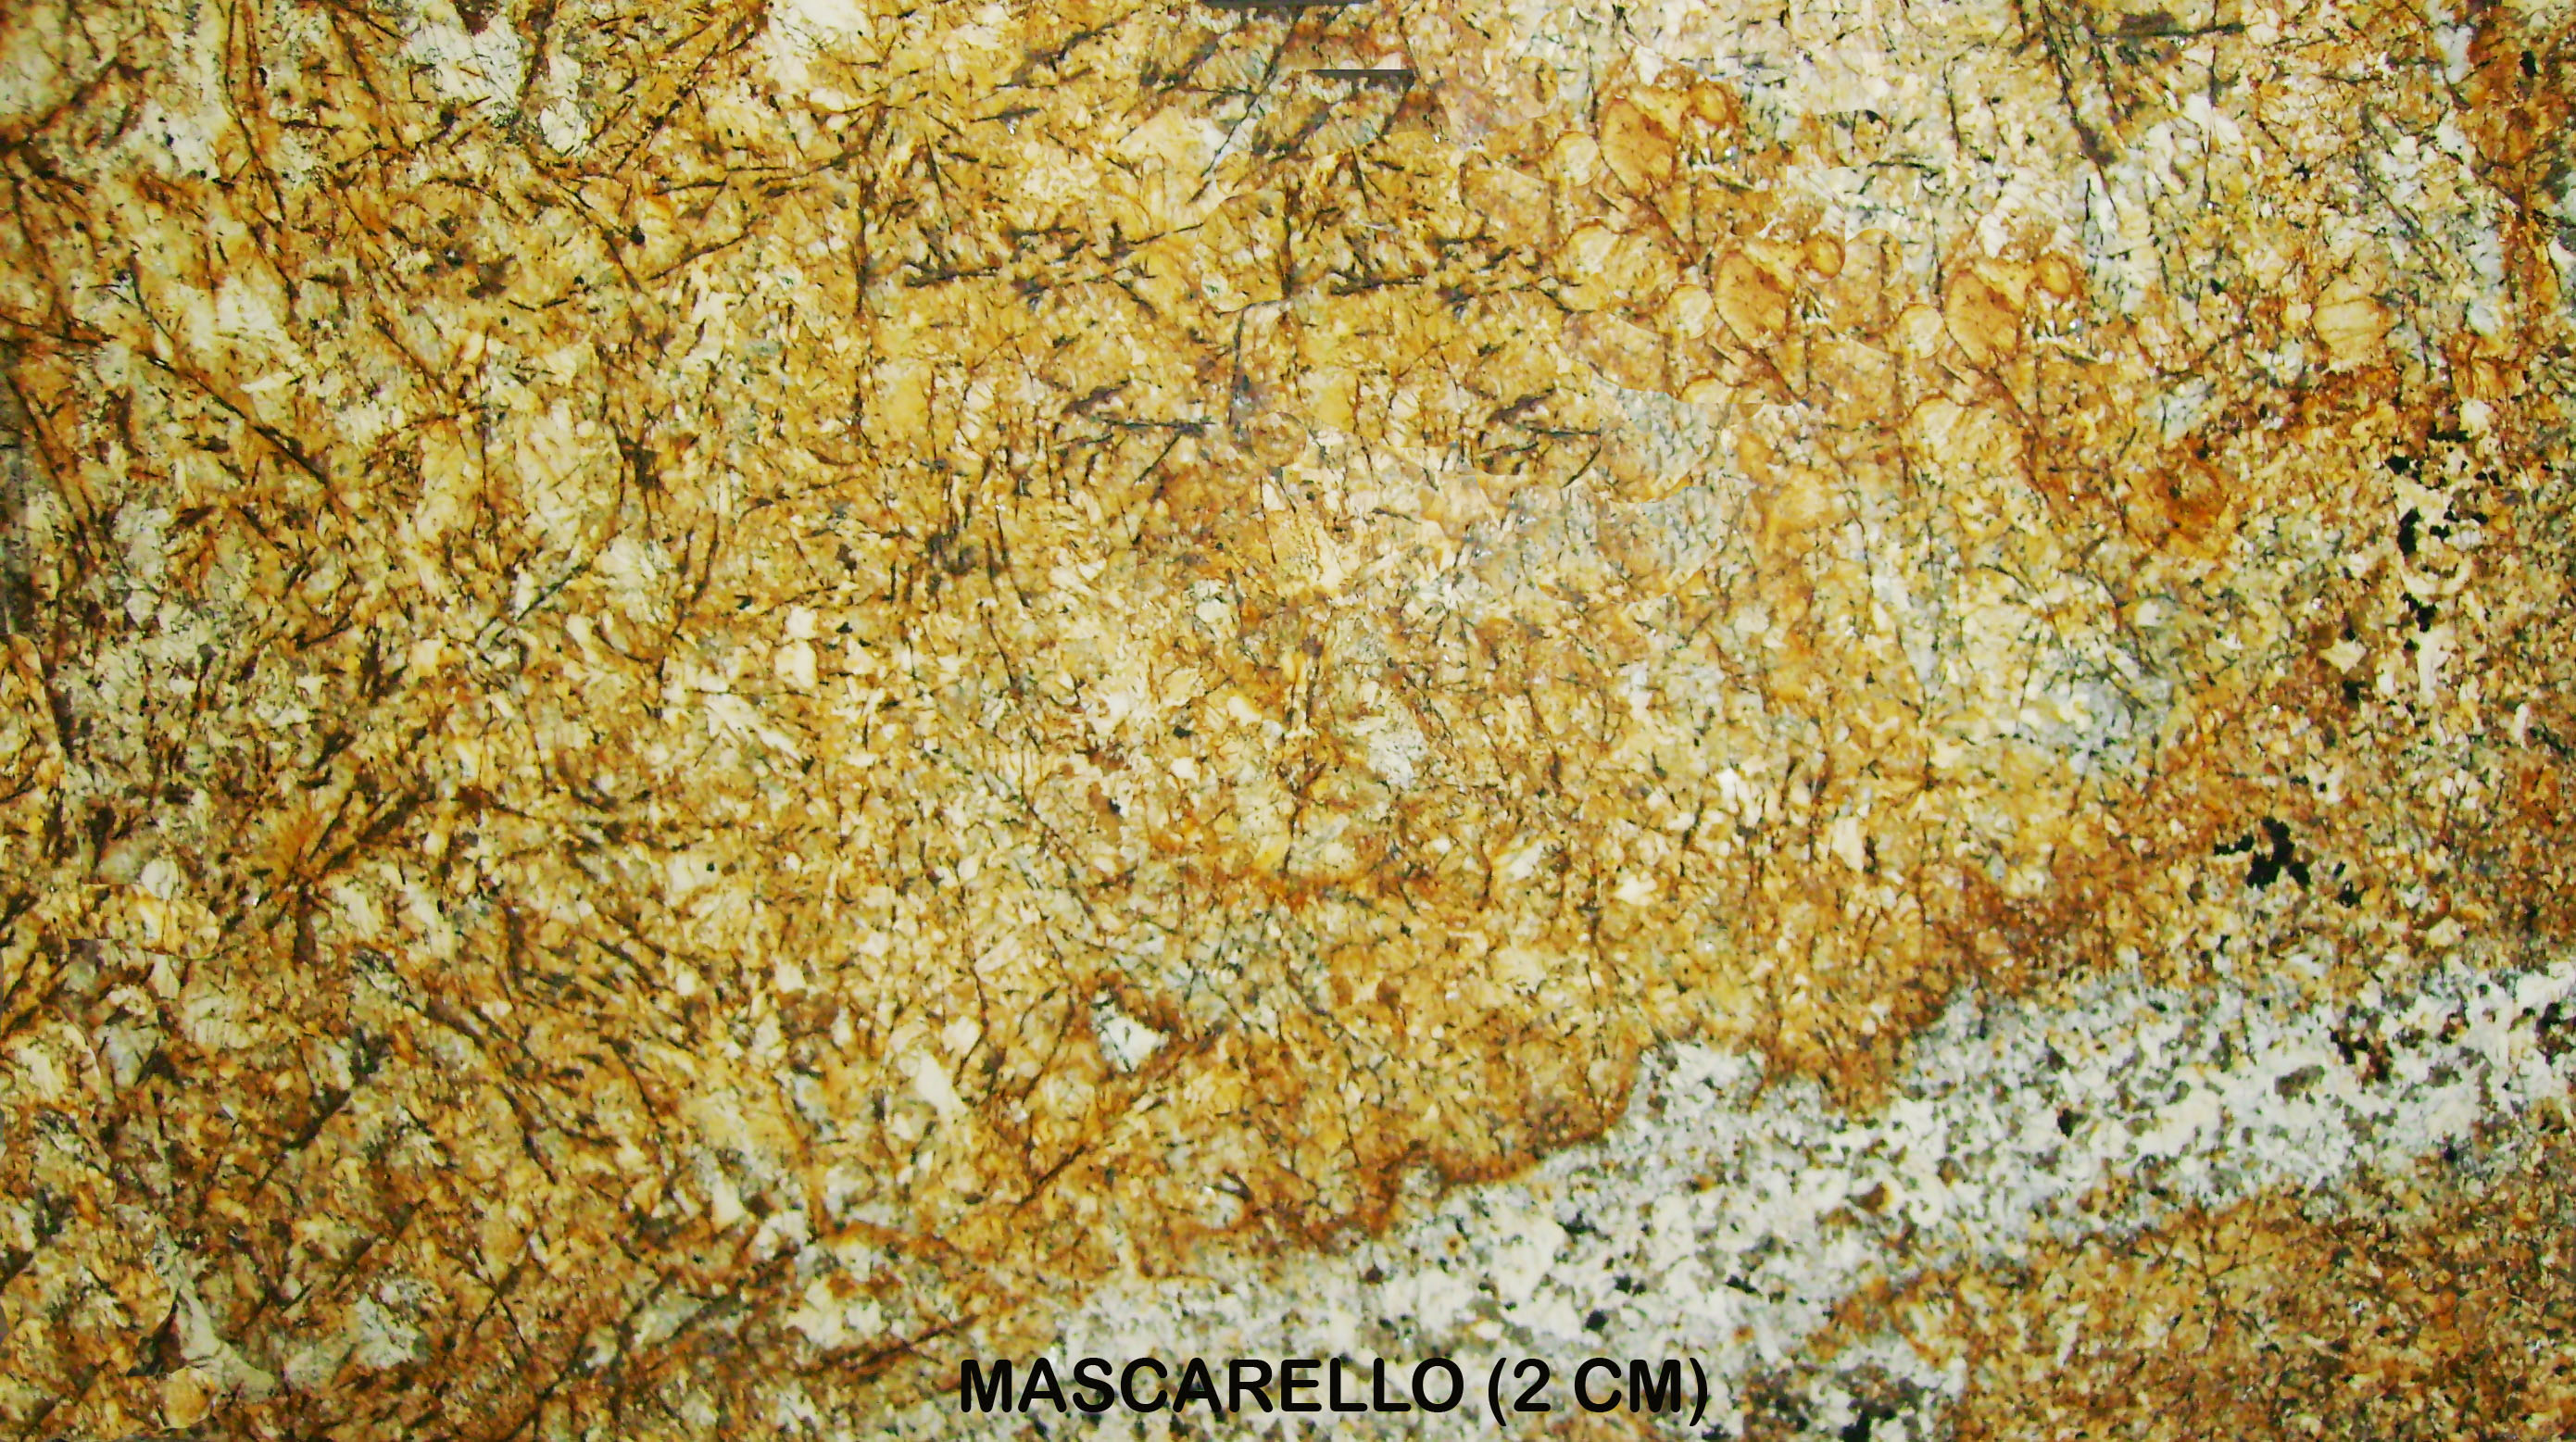 MASCARELLO (2 CM) LOT#0271.JPG